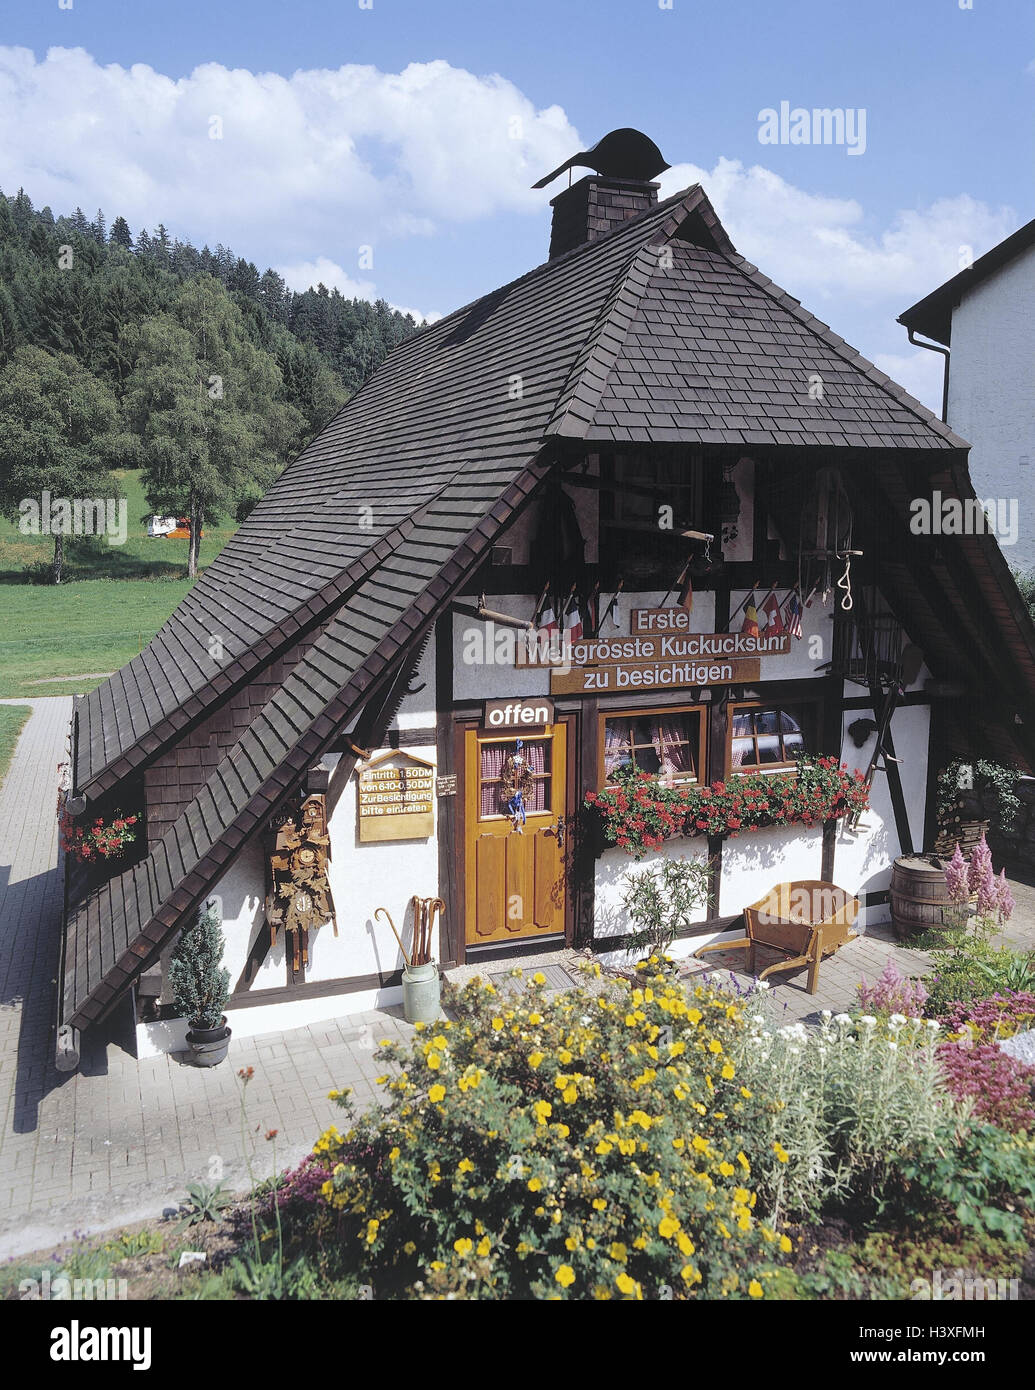 Germany, Black Forest, Schonach, souvenir business, cuckoo's clocks, outside, Baden-Wurttemberg, Black Forest - Stock Image